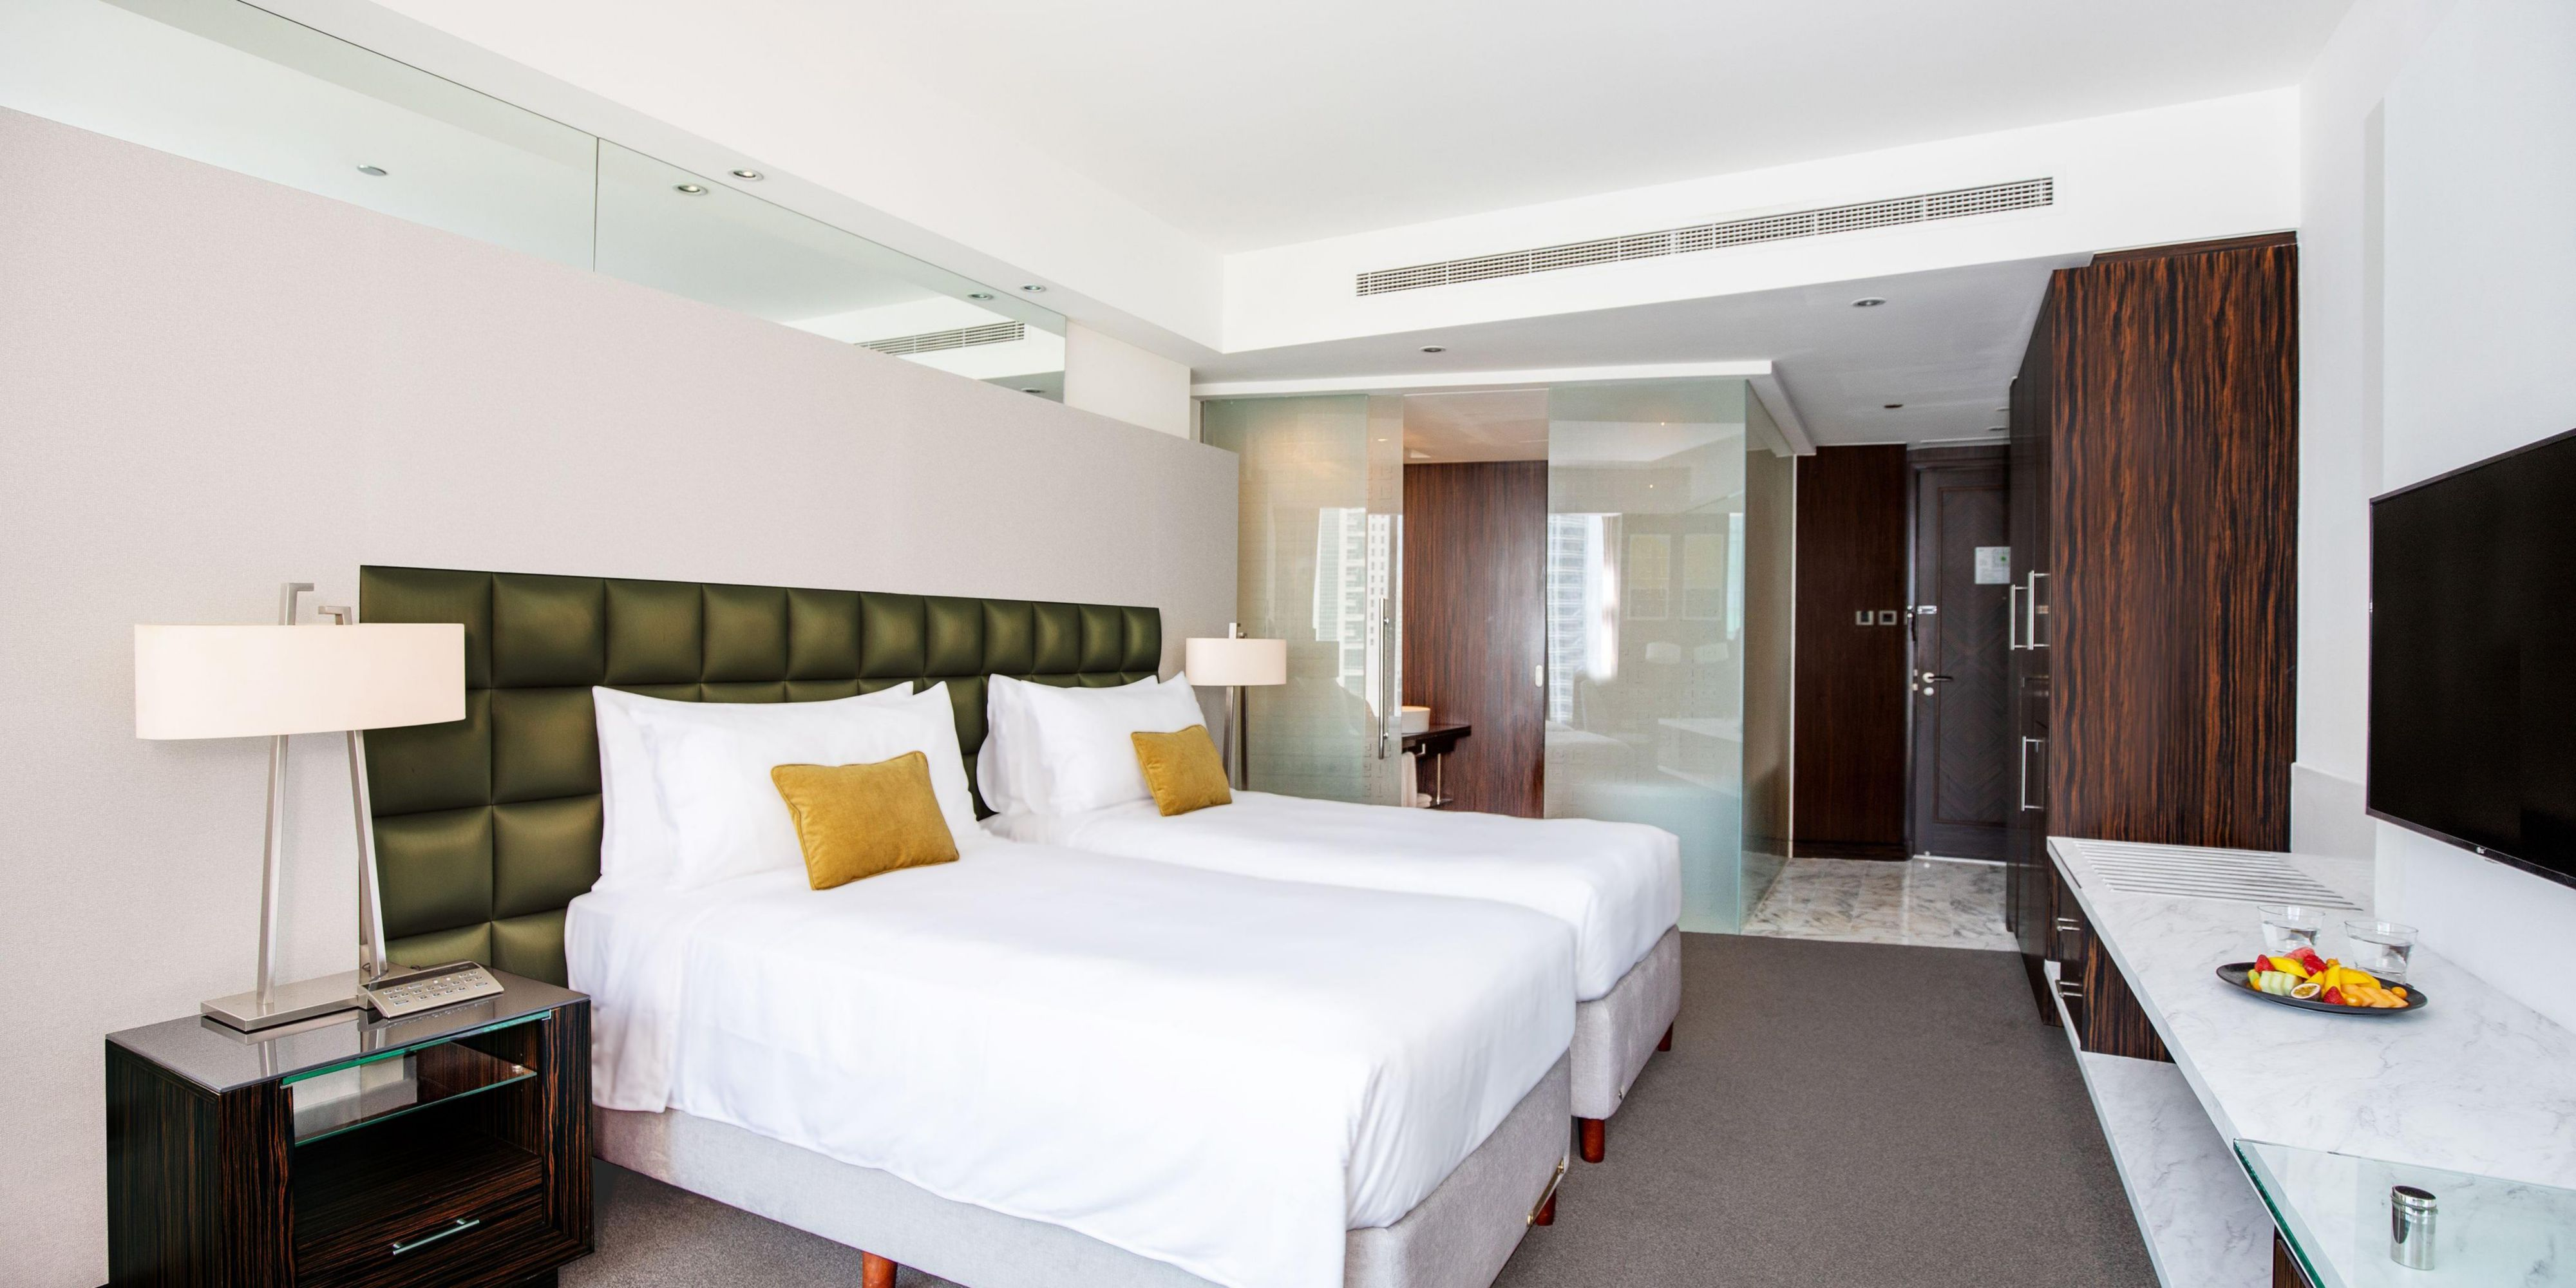 Spacious and welcoming twin beds in the Deluxe room